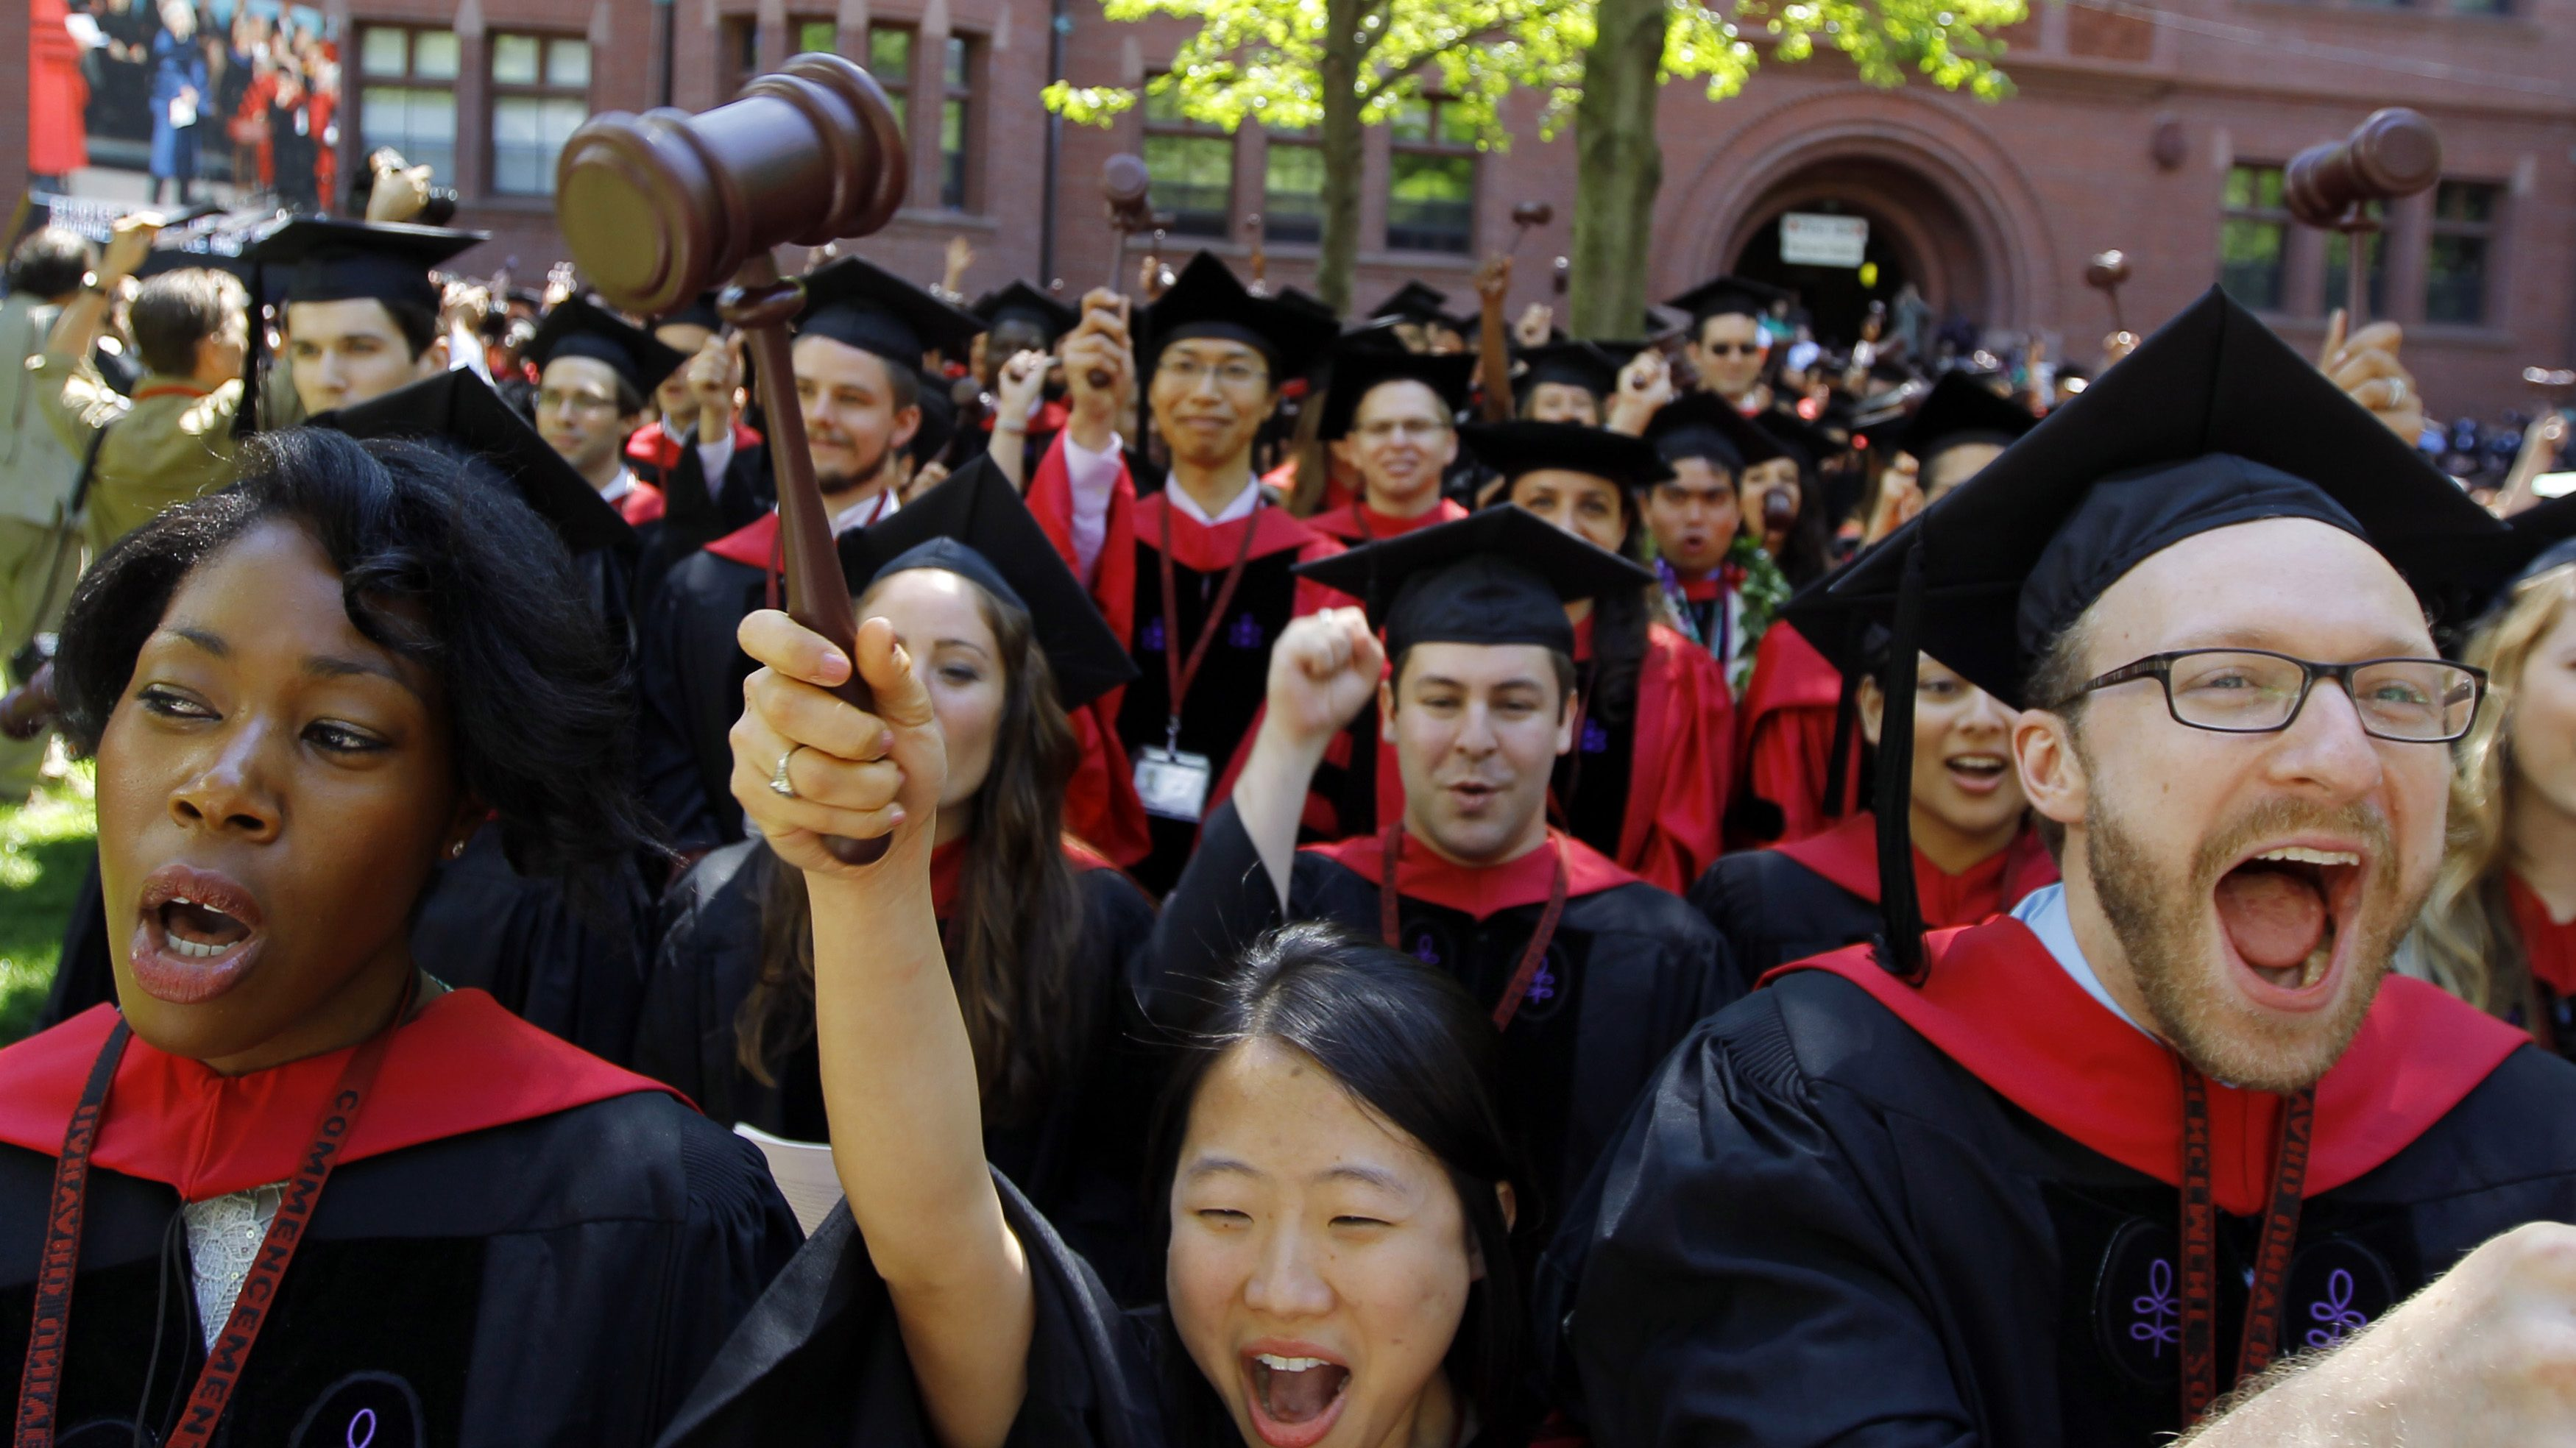 Students from Harvard Law School celebrate as they receive their degrees during the 361st Commencement Exercises at Harvard University in Cambridge, Massachusetts May 24, 2012.       (UNITED STATES - Tags: EDUCATION) - GM2E85P044H01